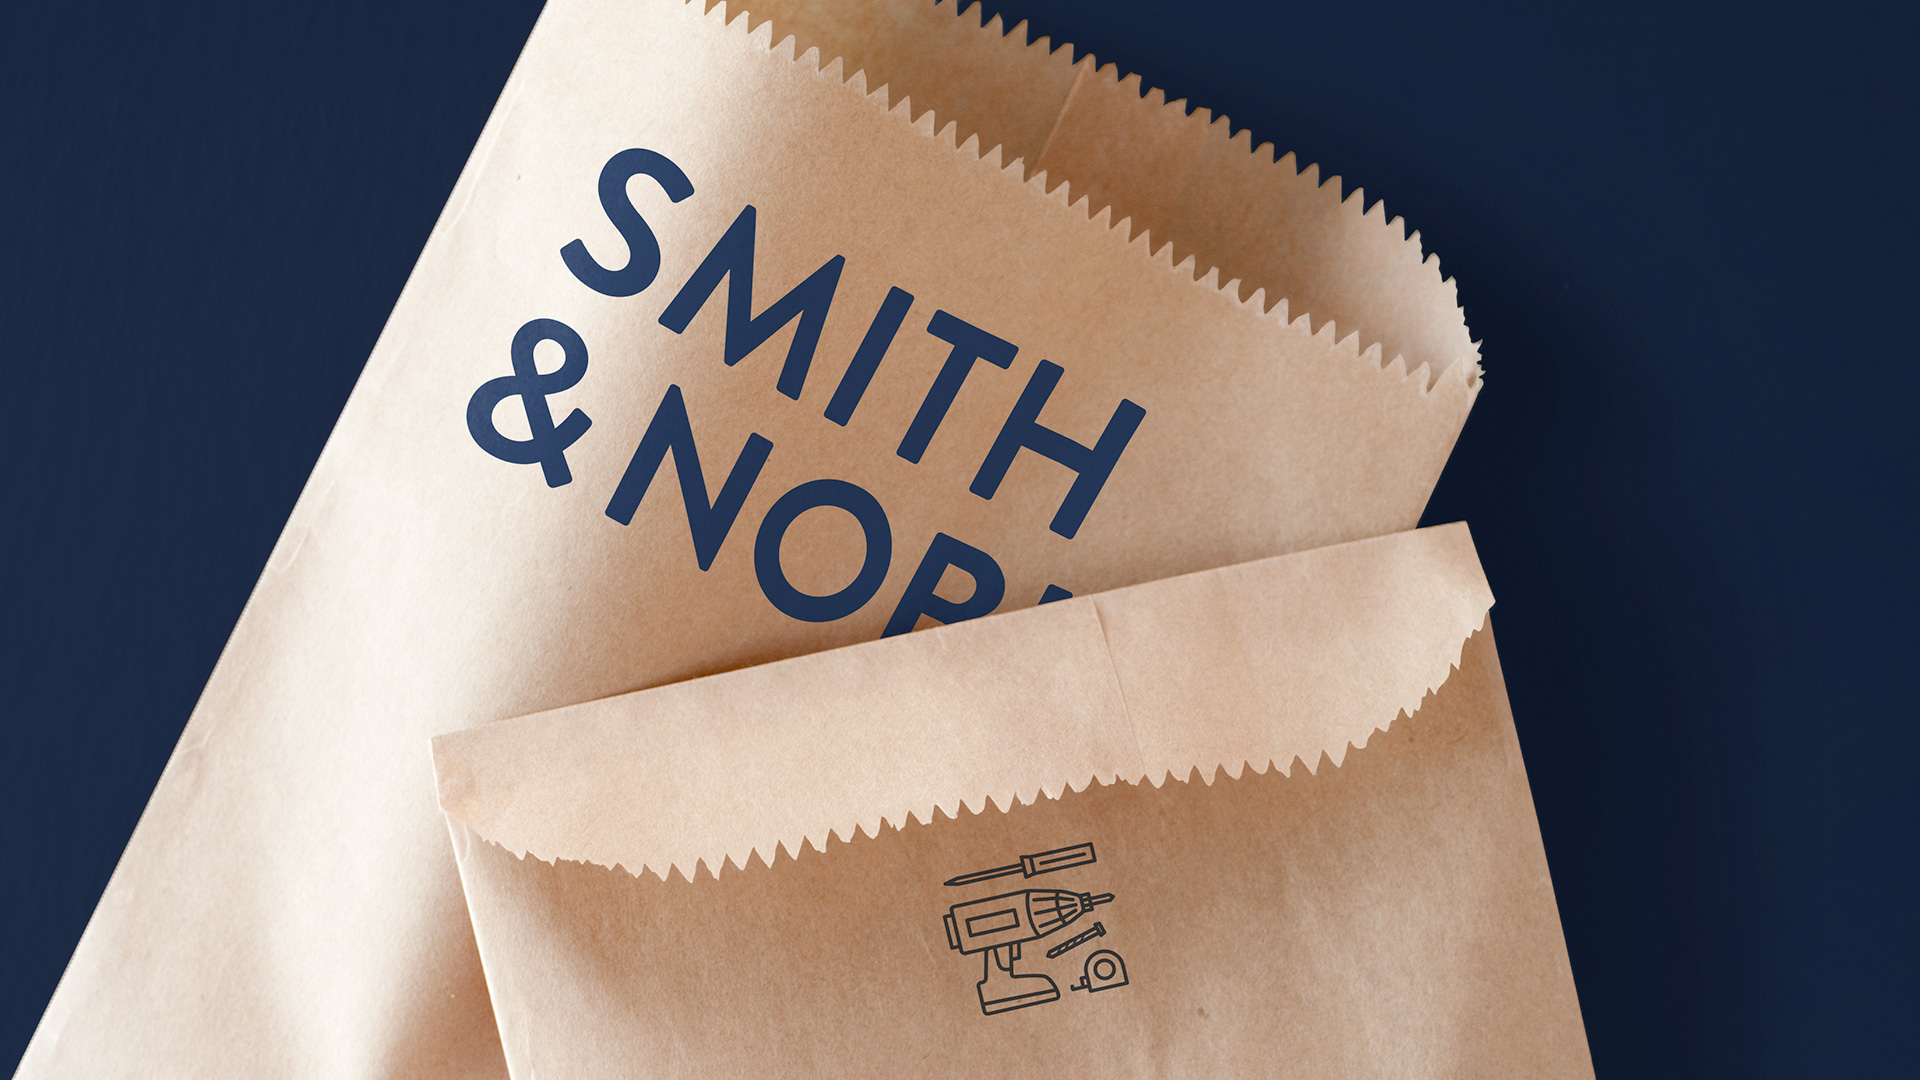 smithandnoble_02_packaging-1